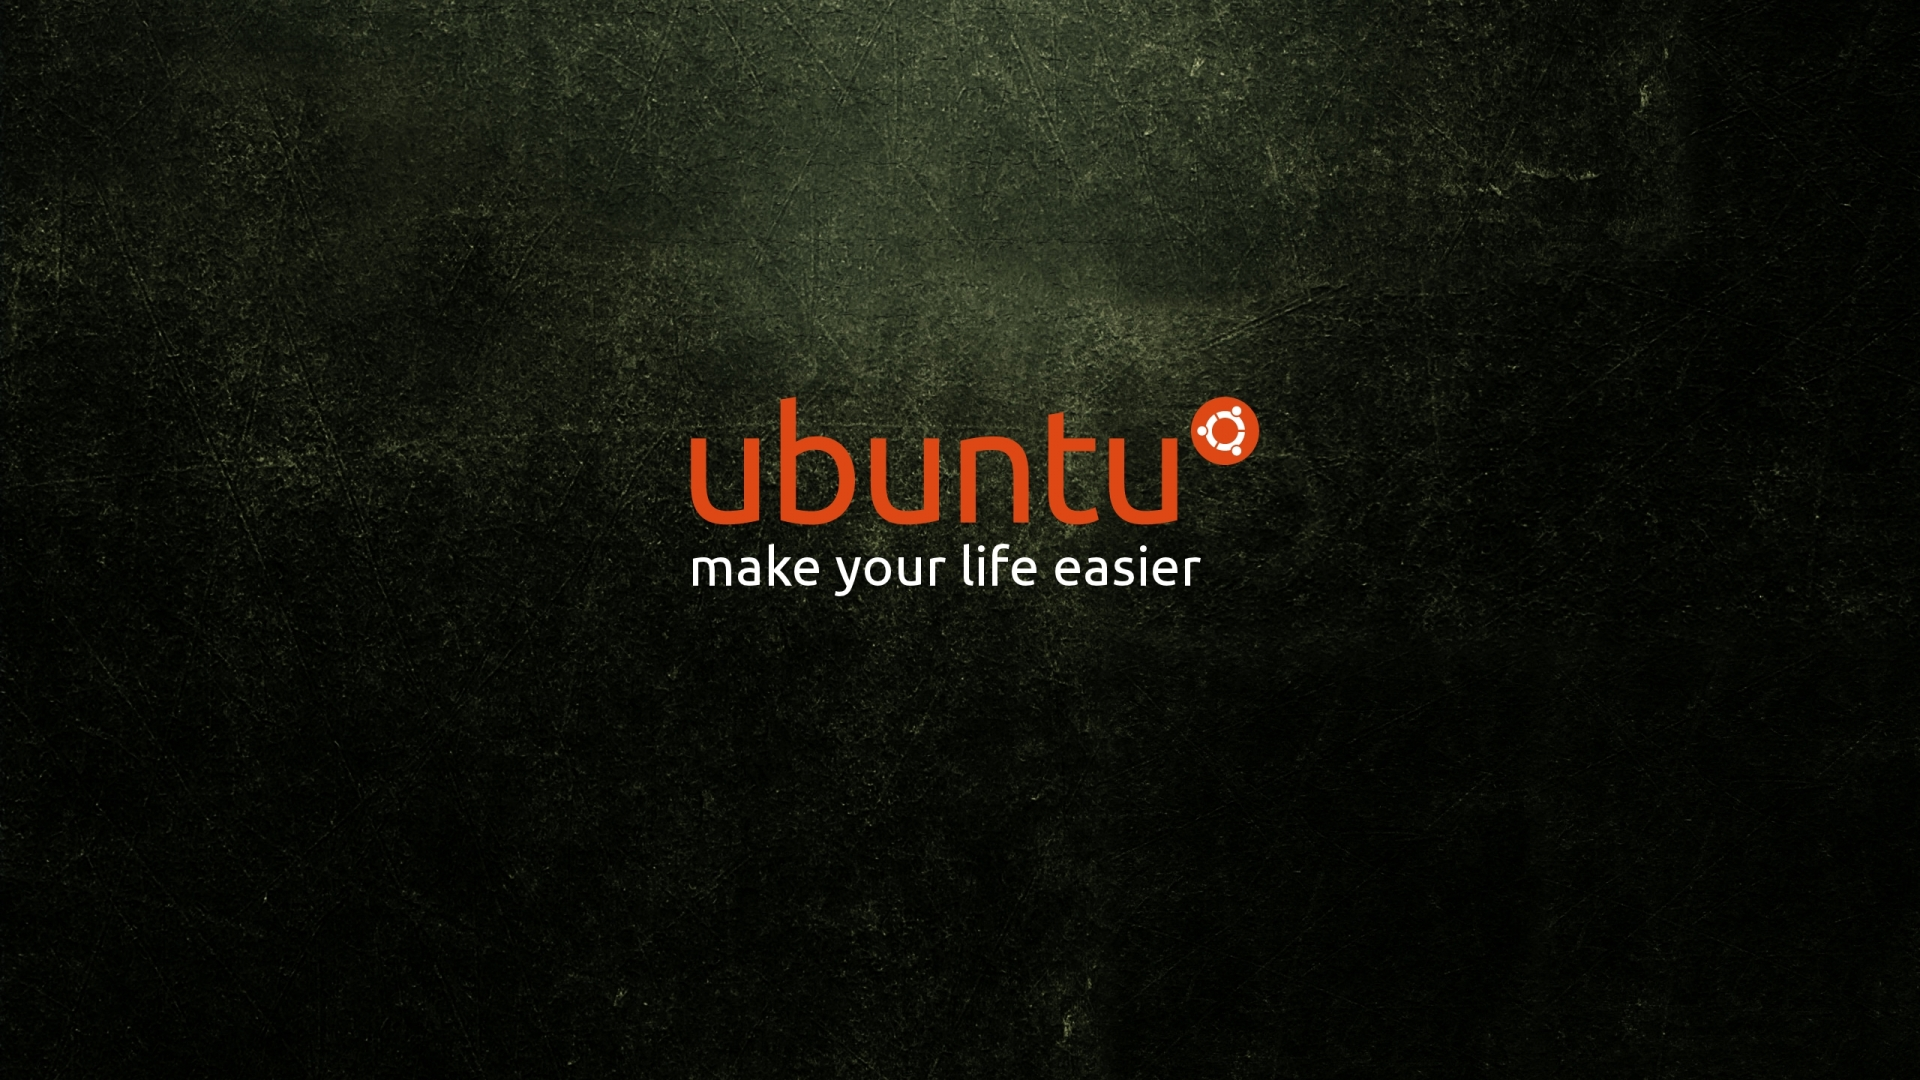 Ubuntu Wallpaper Hd wallpaper   1108957 1920x1080